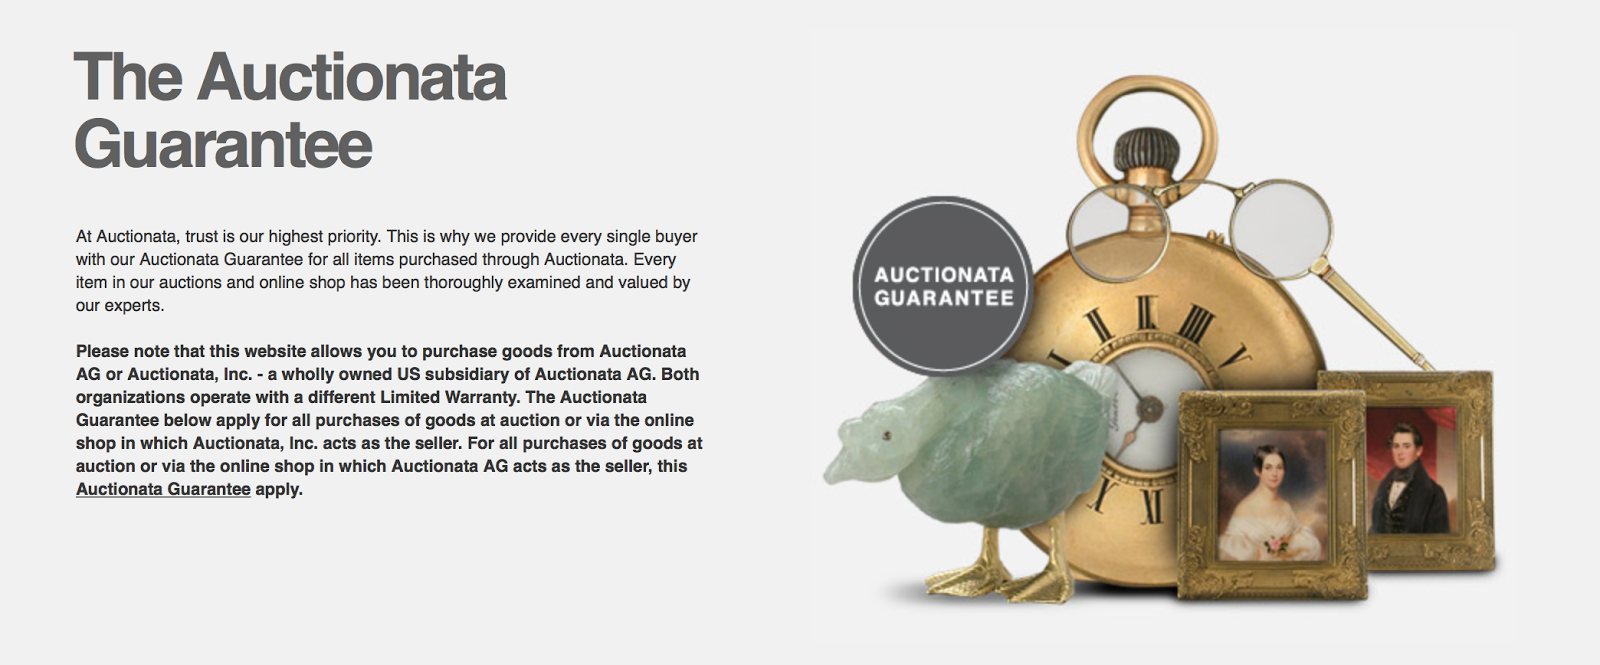 Auctionata Guarantee